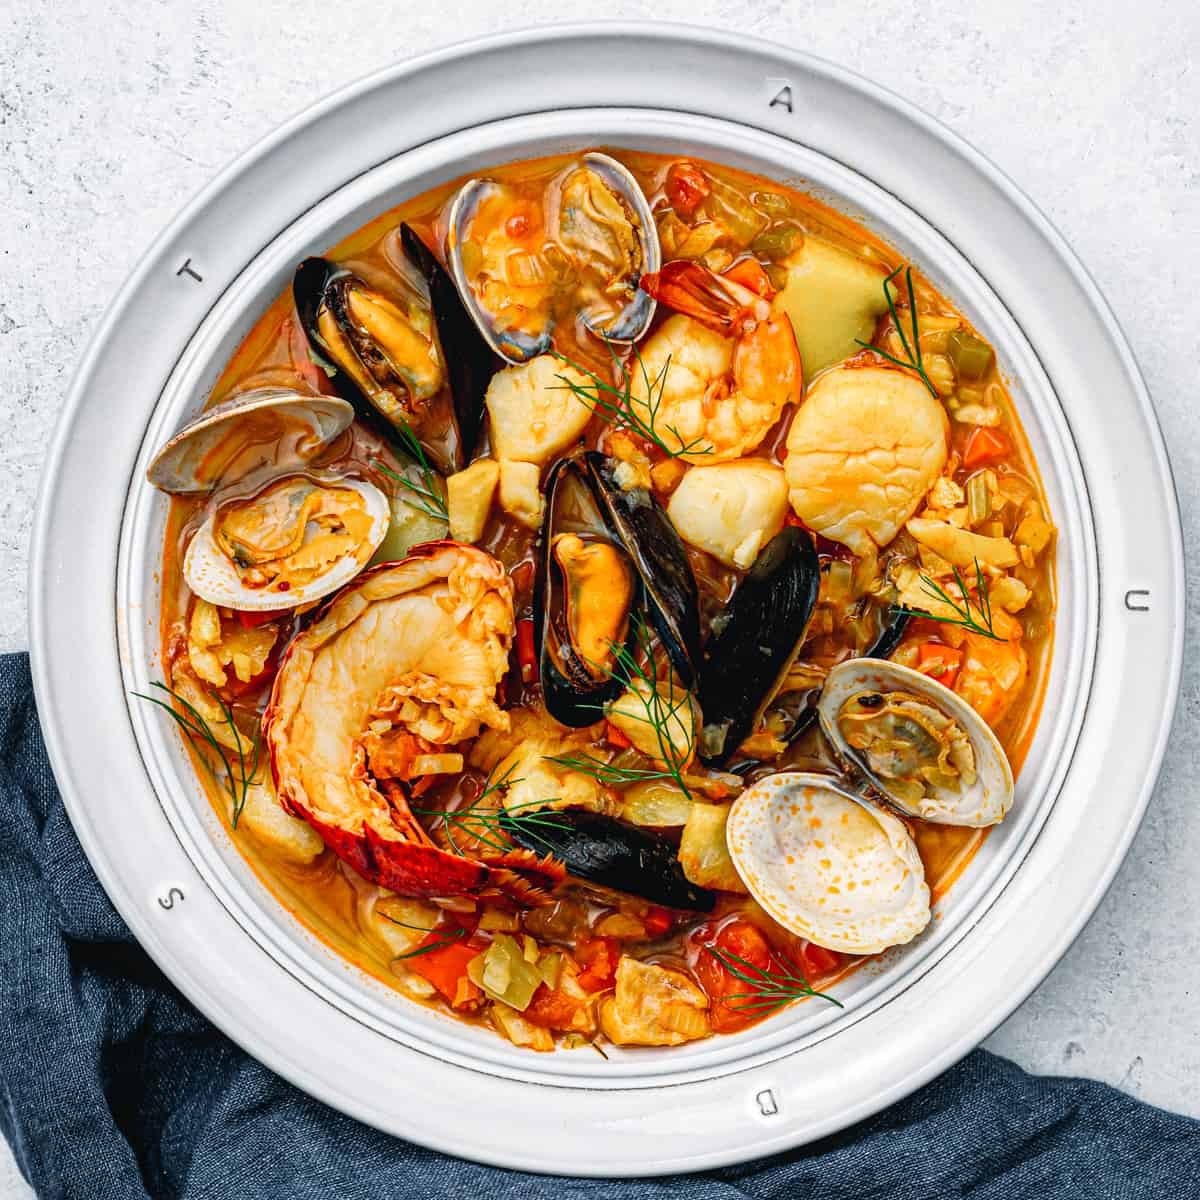 Bouillabaisse, the traditional Provençal fish stew.